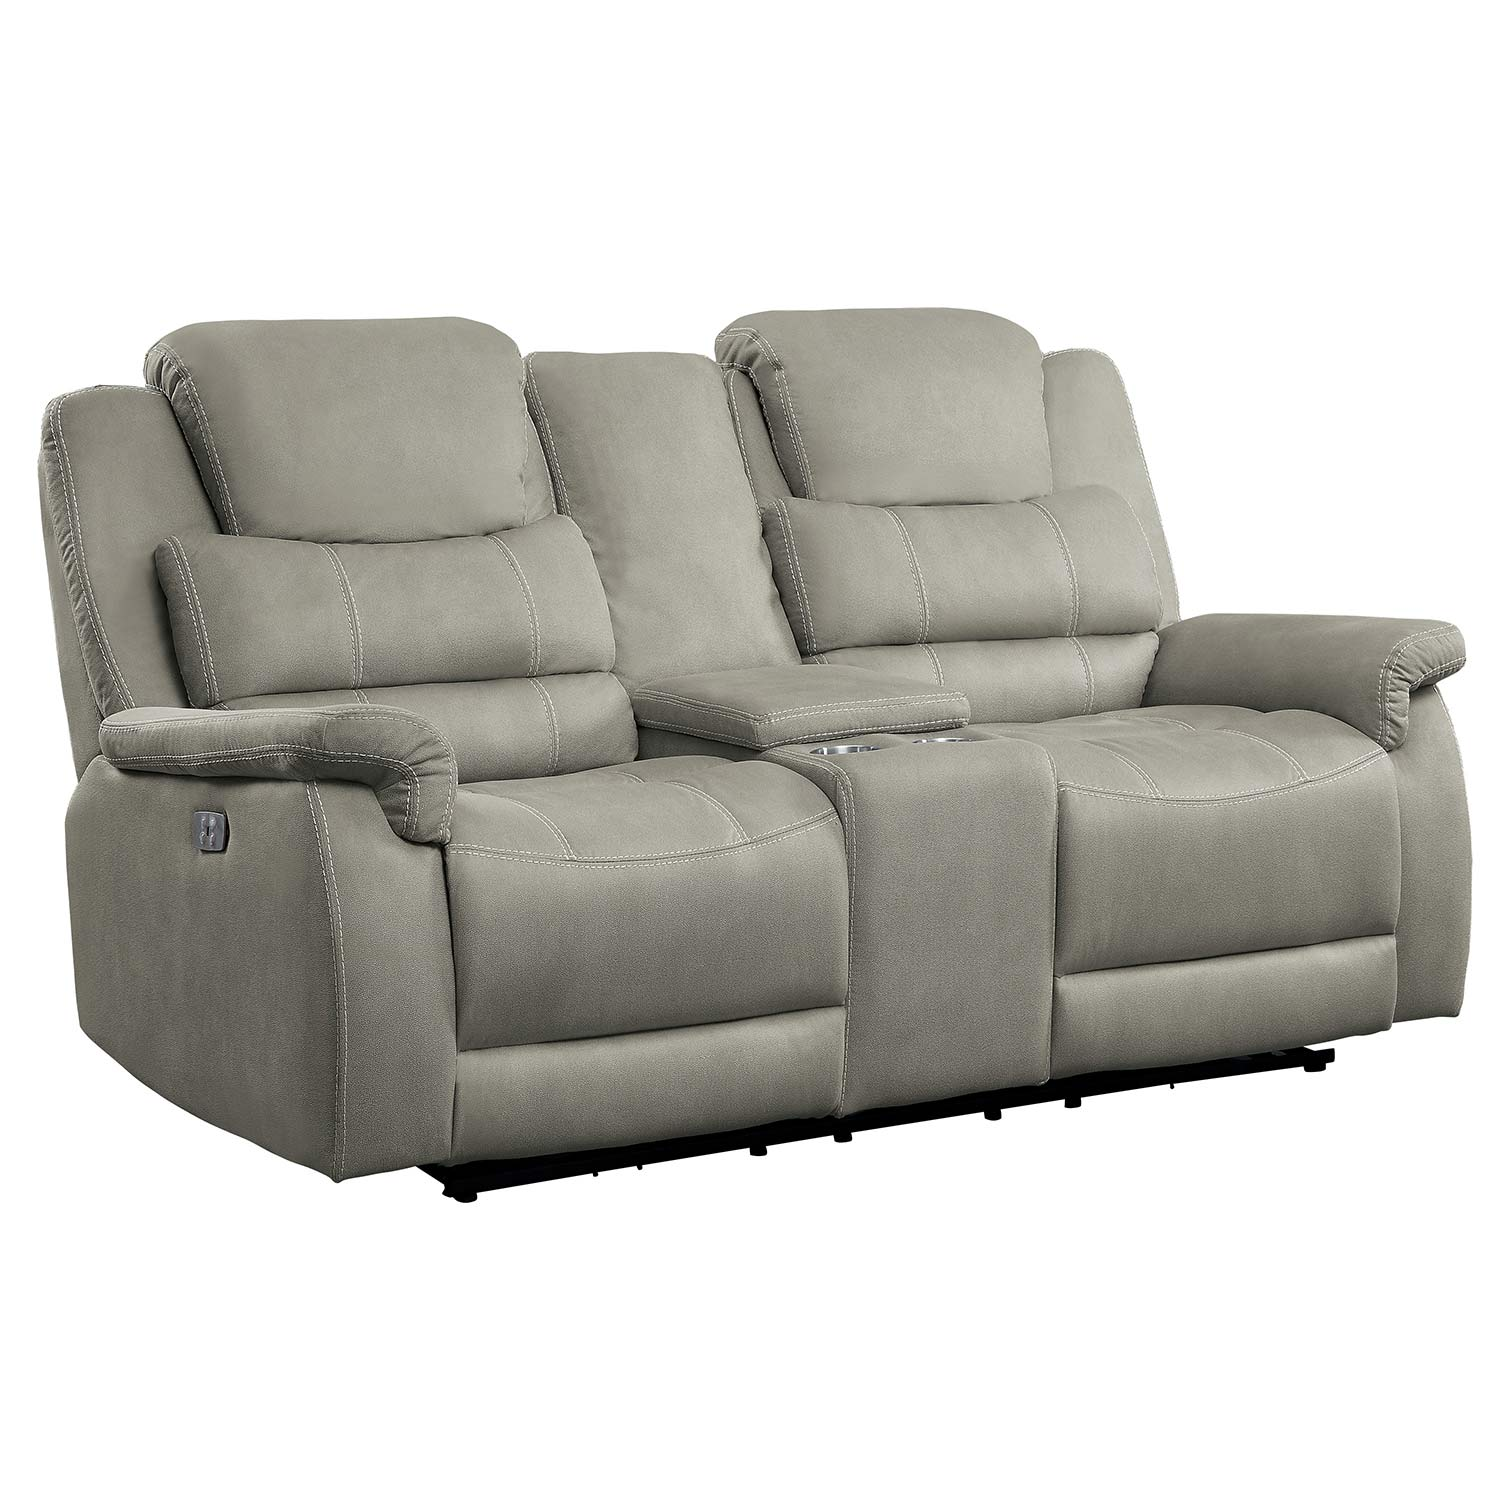 Homelegance Shola Double Glider Reclining Love Seat with Center Console - Gray